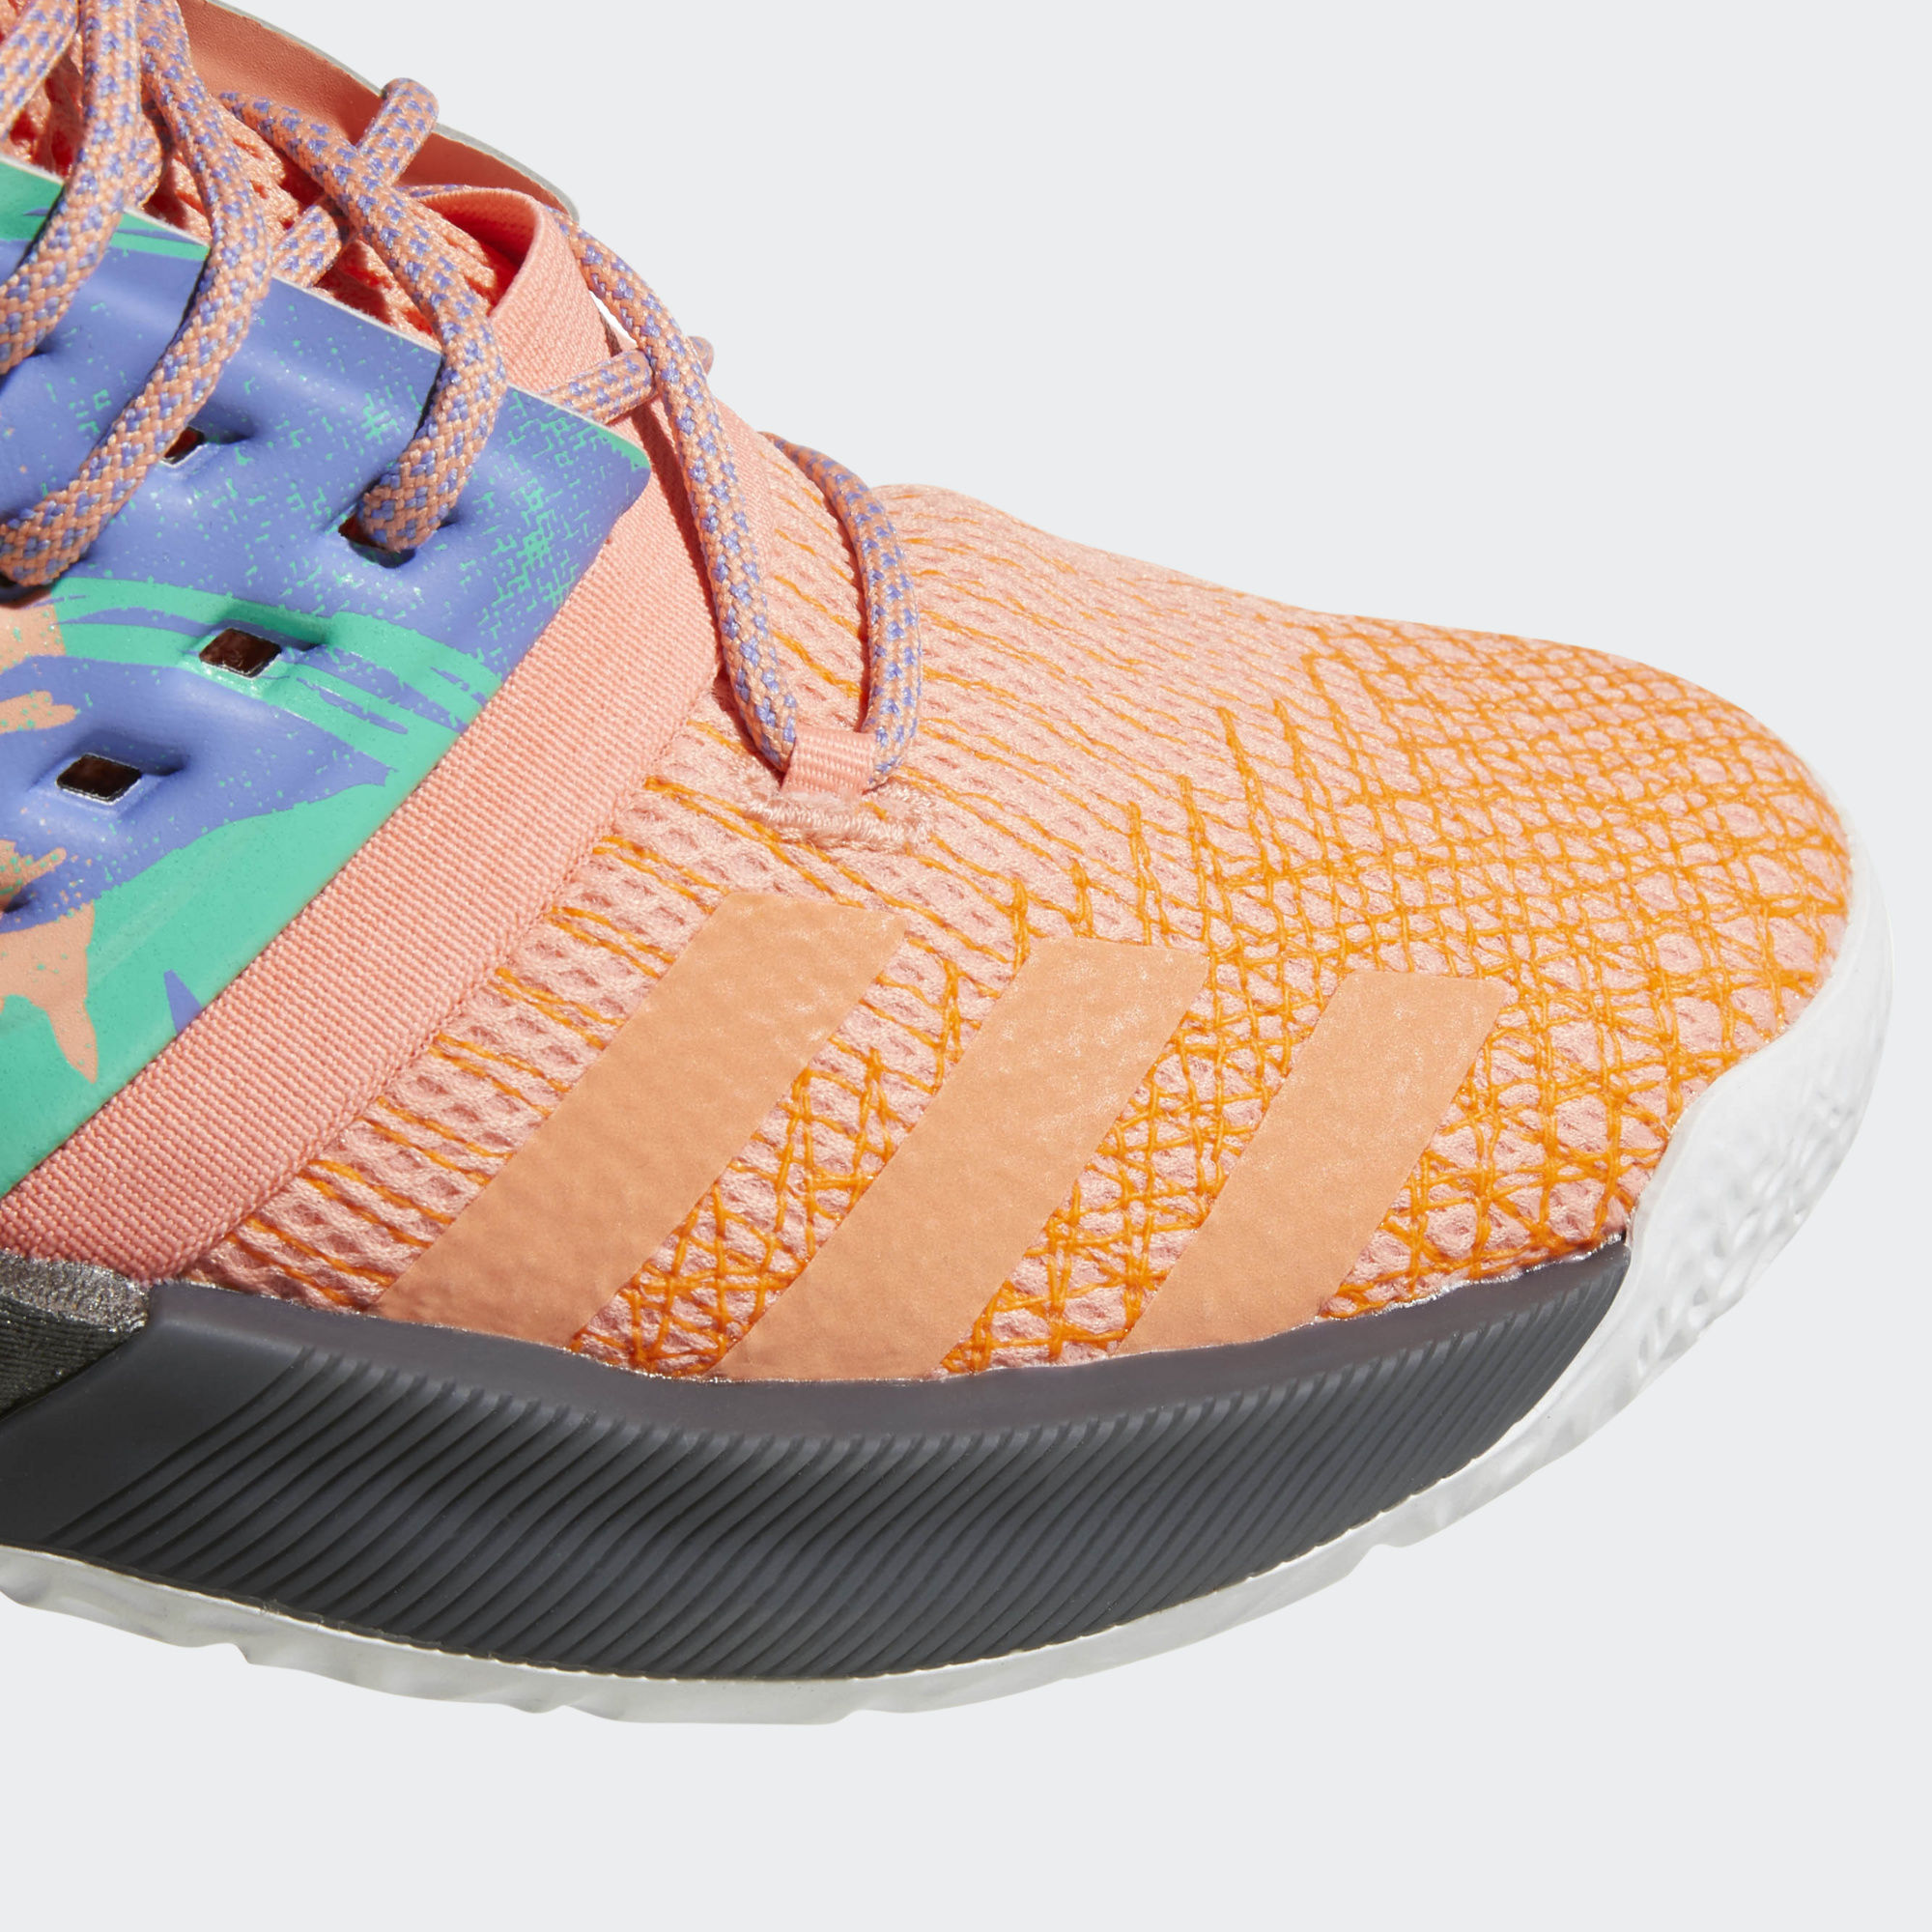 Adidas Releases James Harden s Second Signature Shoe  Harden Vol. 2 - MASSES a7ff176935b7